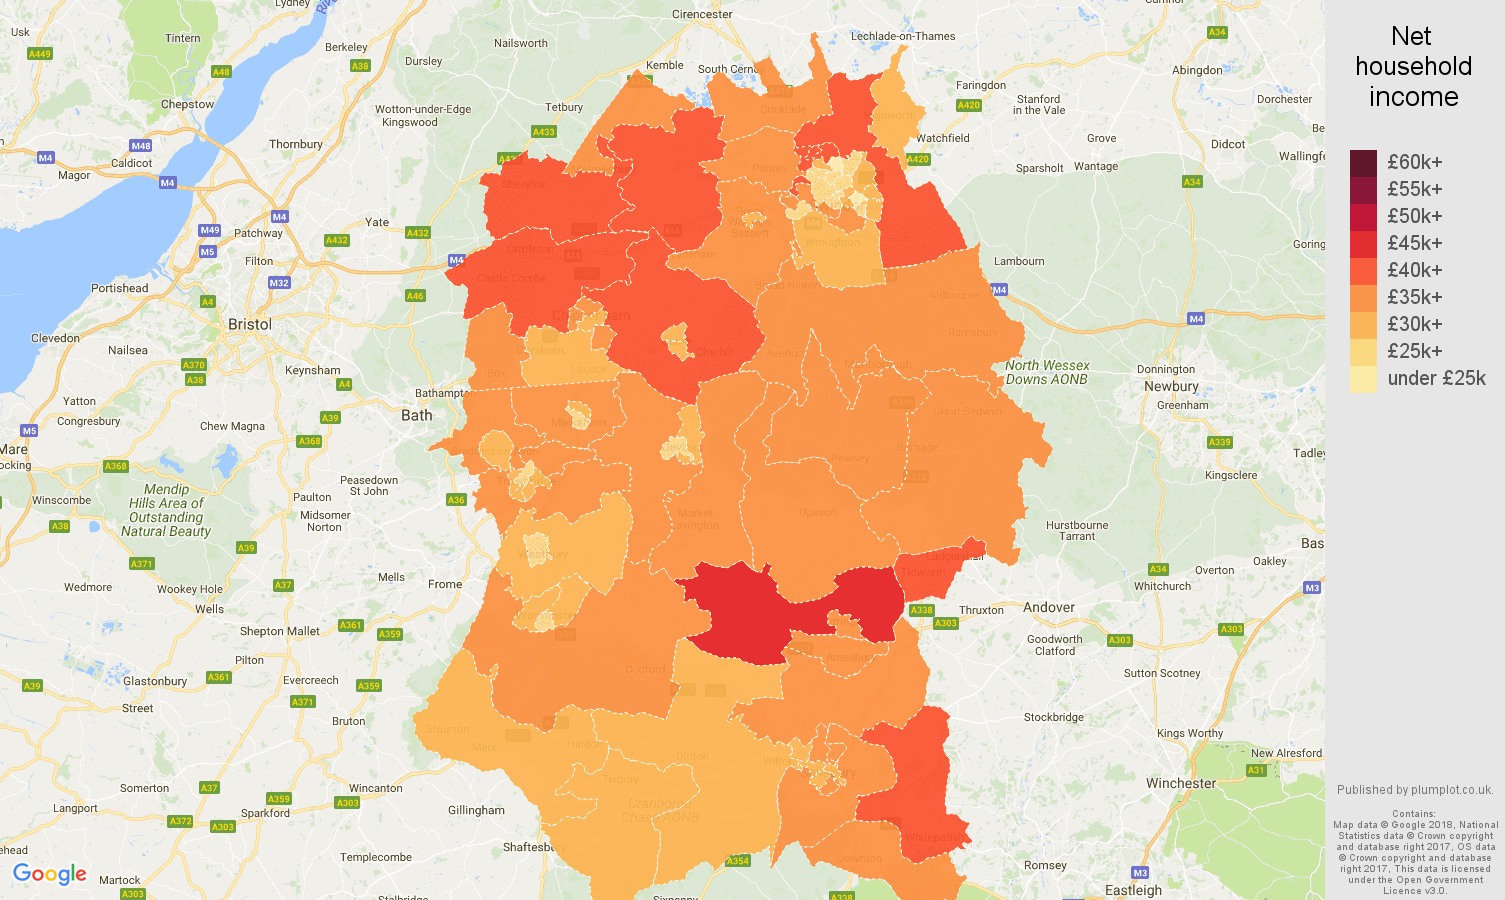 Wiltshire net household income map